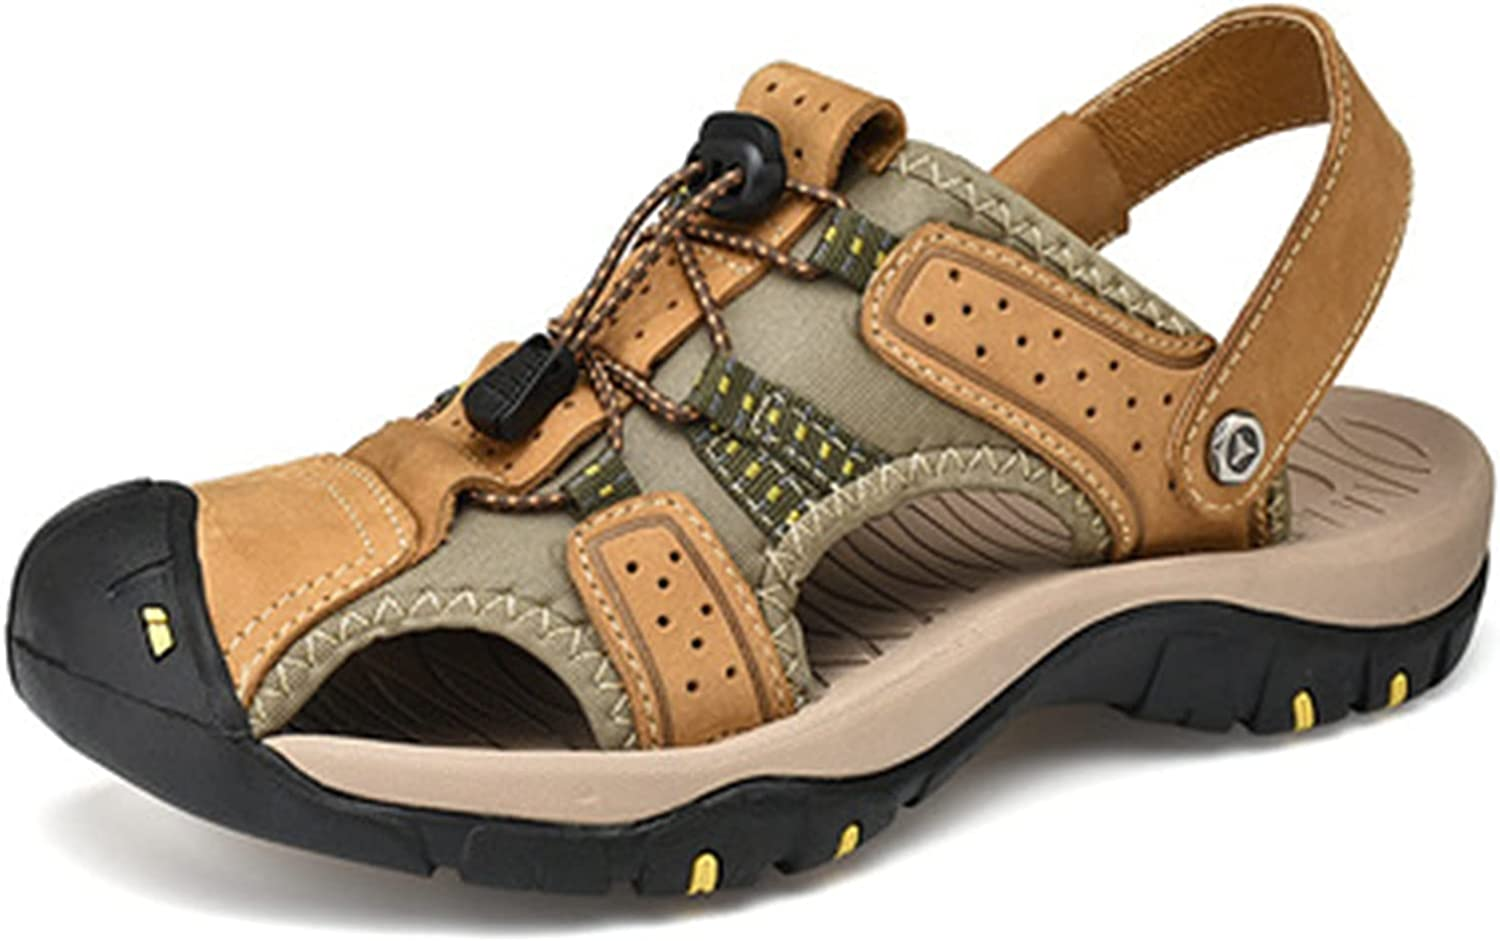 generetic Mens's Sandals Sports Outdoor Hiking Sandals Outdoor Walking Shoes Summer Casual Athletic Beach Comfortable Toecap flip Flops Comfortable Thick Bottom (Color : Brown, Size : 41)